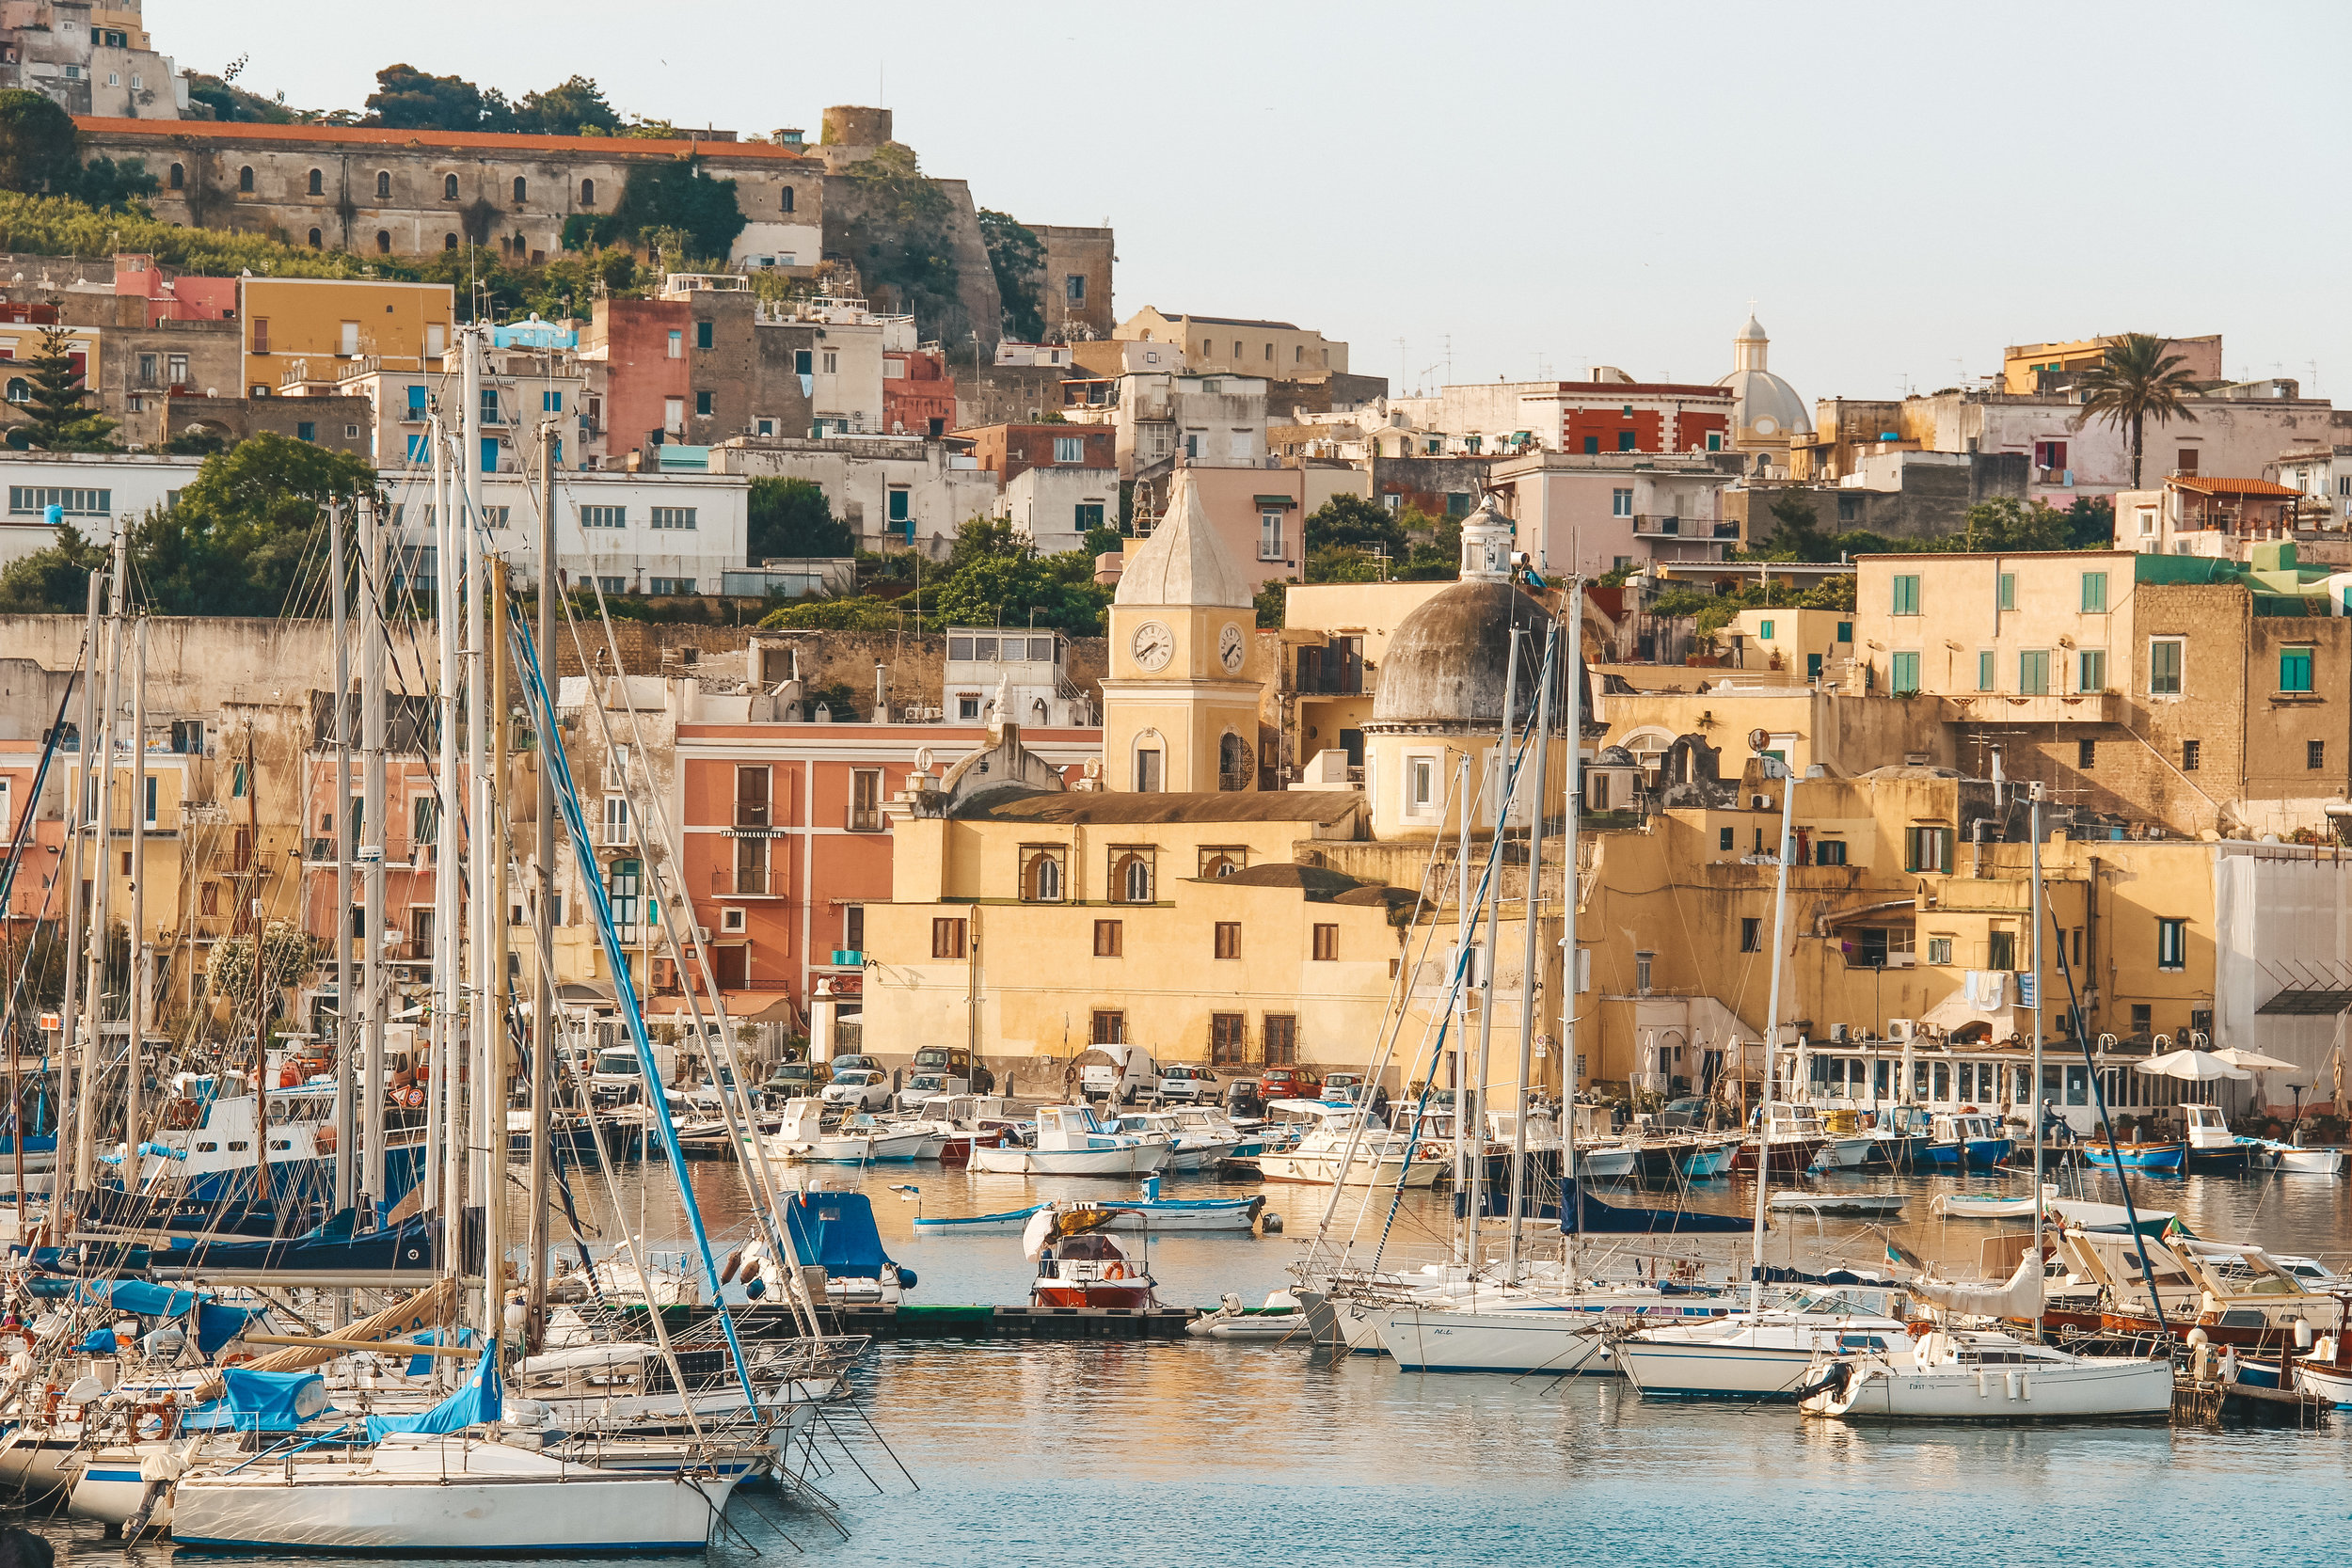 Know Before You Go - Plan to visit Procida & Ischia (2 nights); Capri (2 nights); Positano (2 nights); Amalfi (1-2 hours); Ravello (1 night); and Naples & Pompeii (1 night before/after flight).